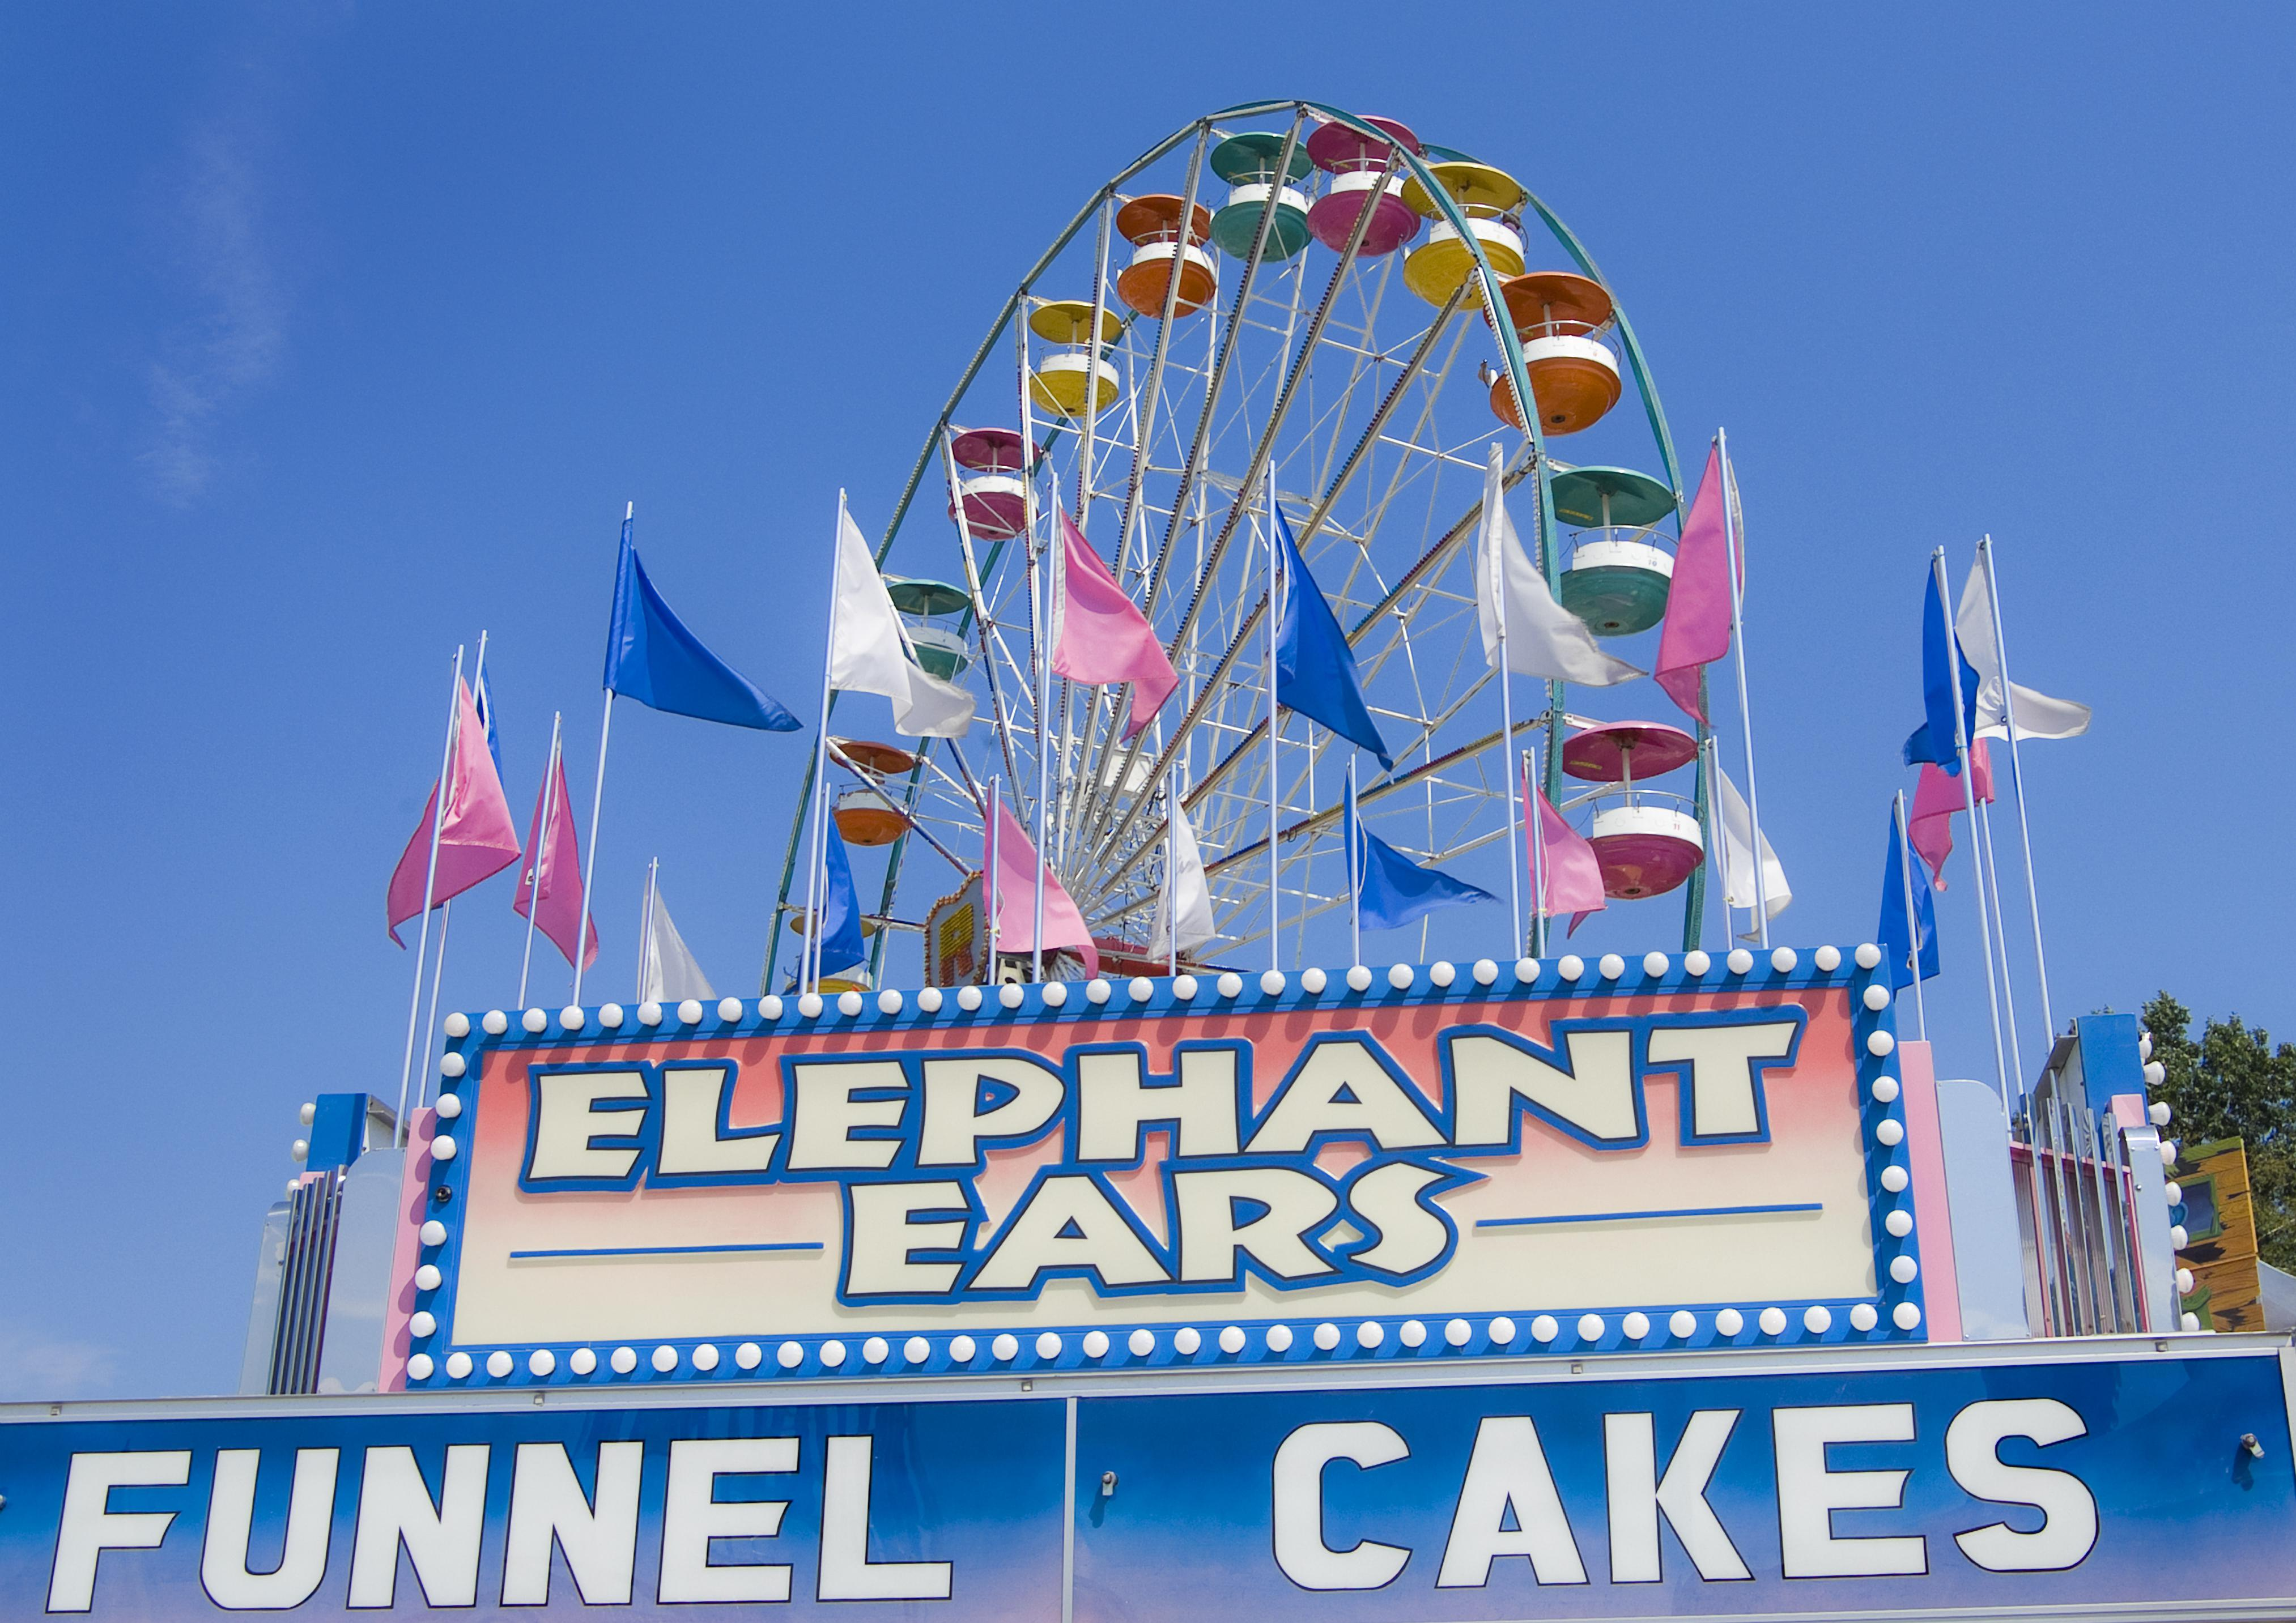 Fair rides and food booths at a traditional county fair in Essex, Vermont